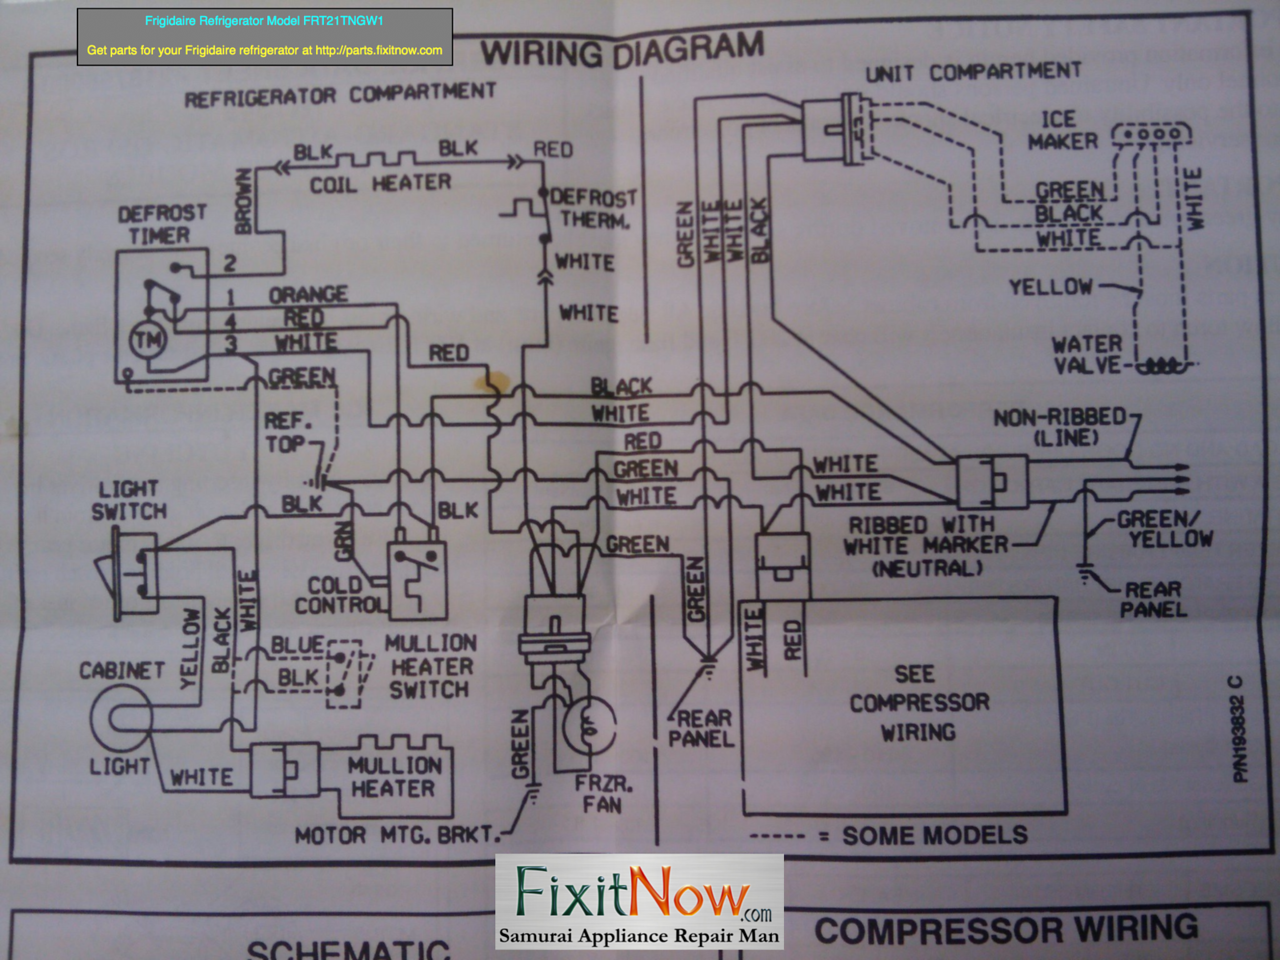 wiring diagrams and schematics appliantology ge refrigerator wiring diagram tff24rlb frigidaire refrigerator model frt21tngw1 wiring diagram